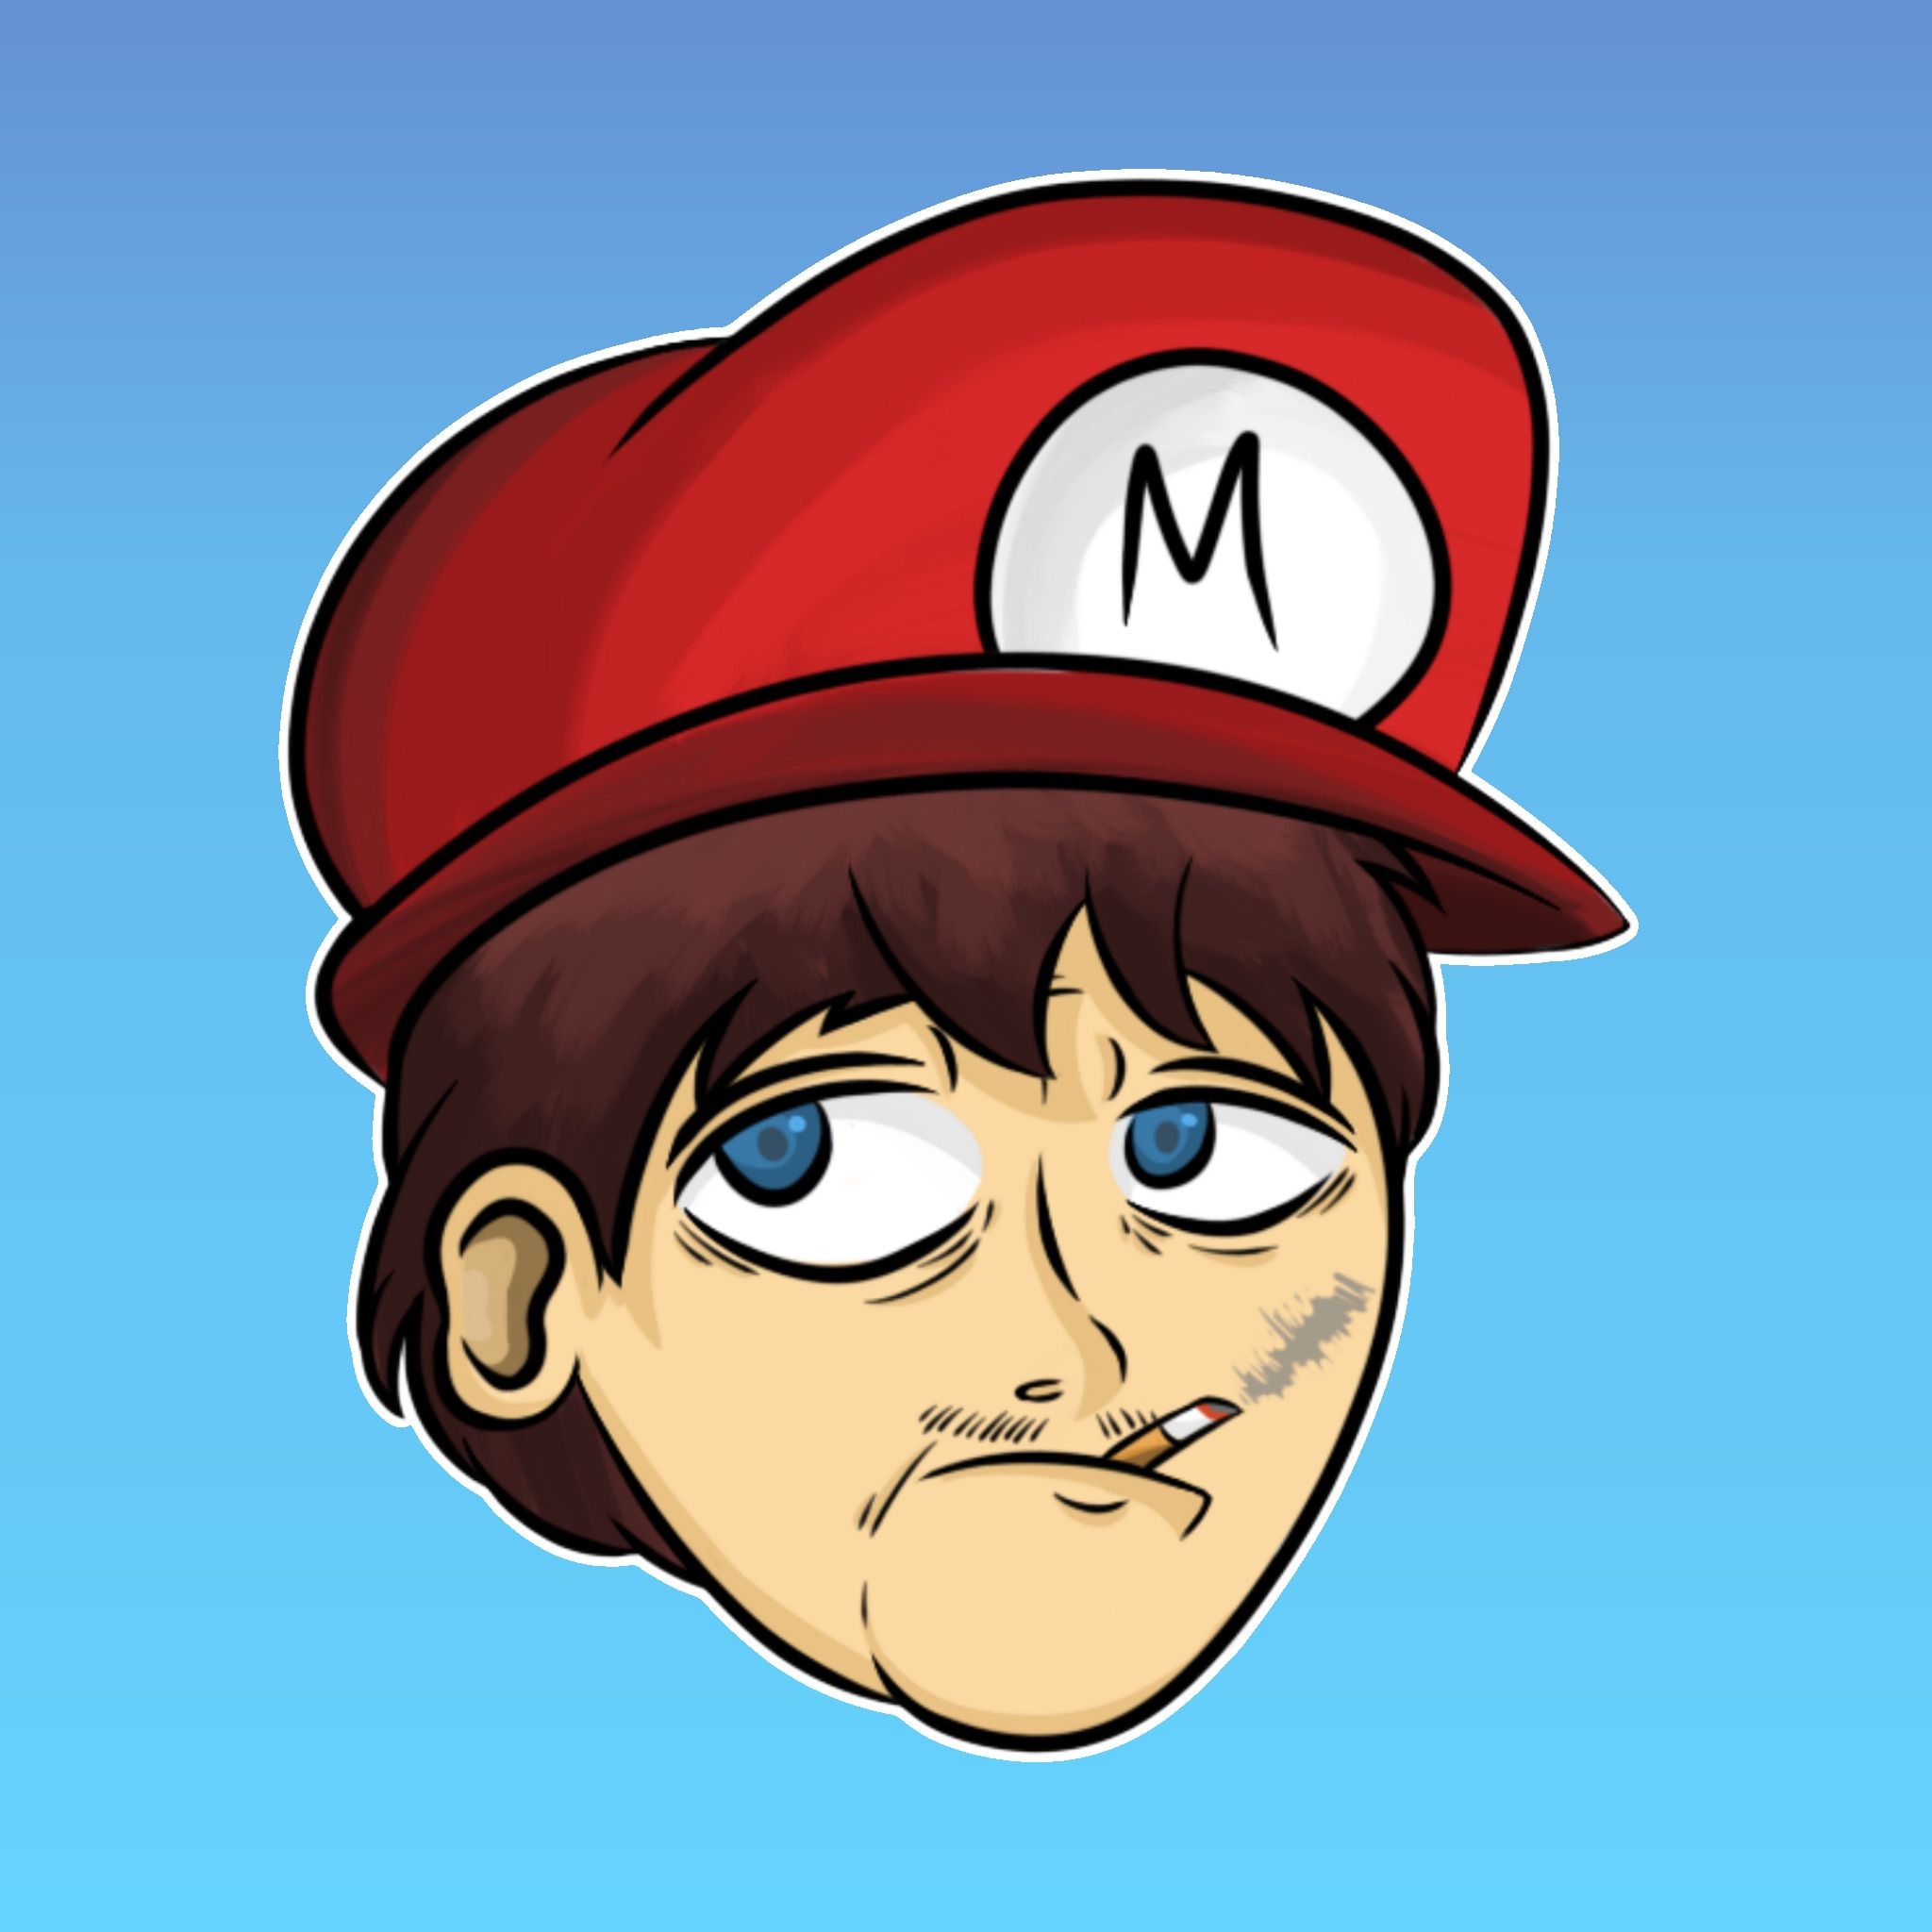 Thug Mario [Drawing] - 2/14/16